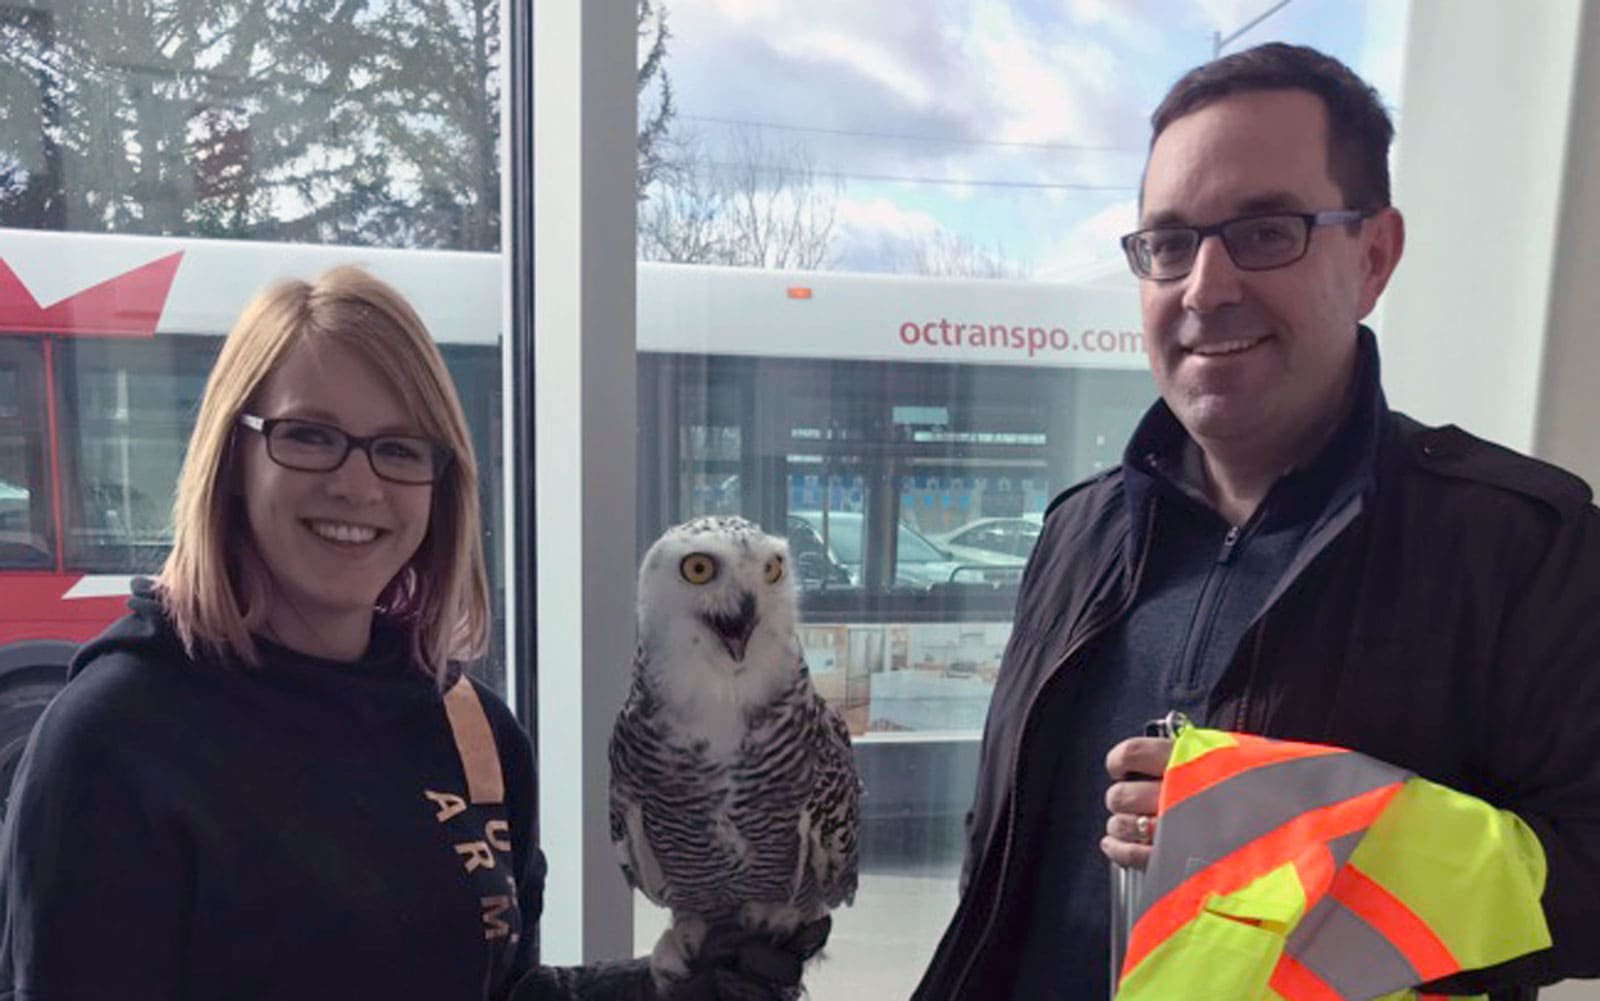 Meeting Quibbles the Owl at Trail Road landfill